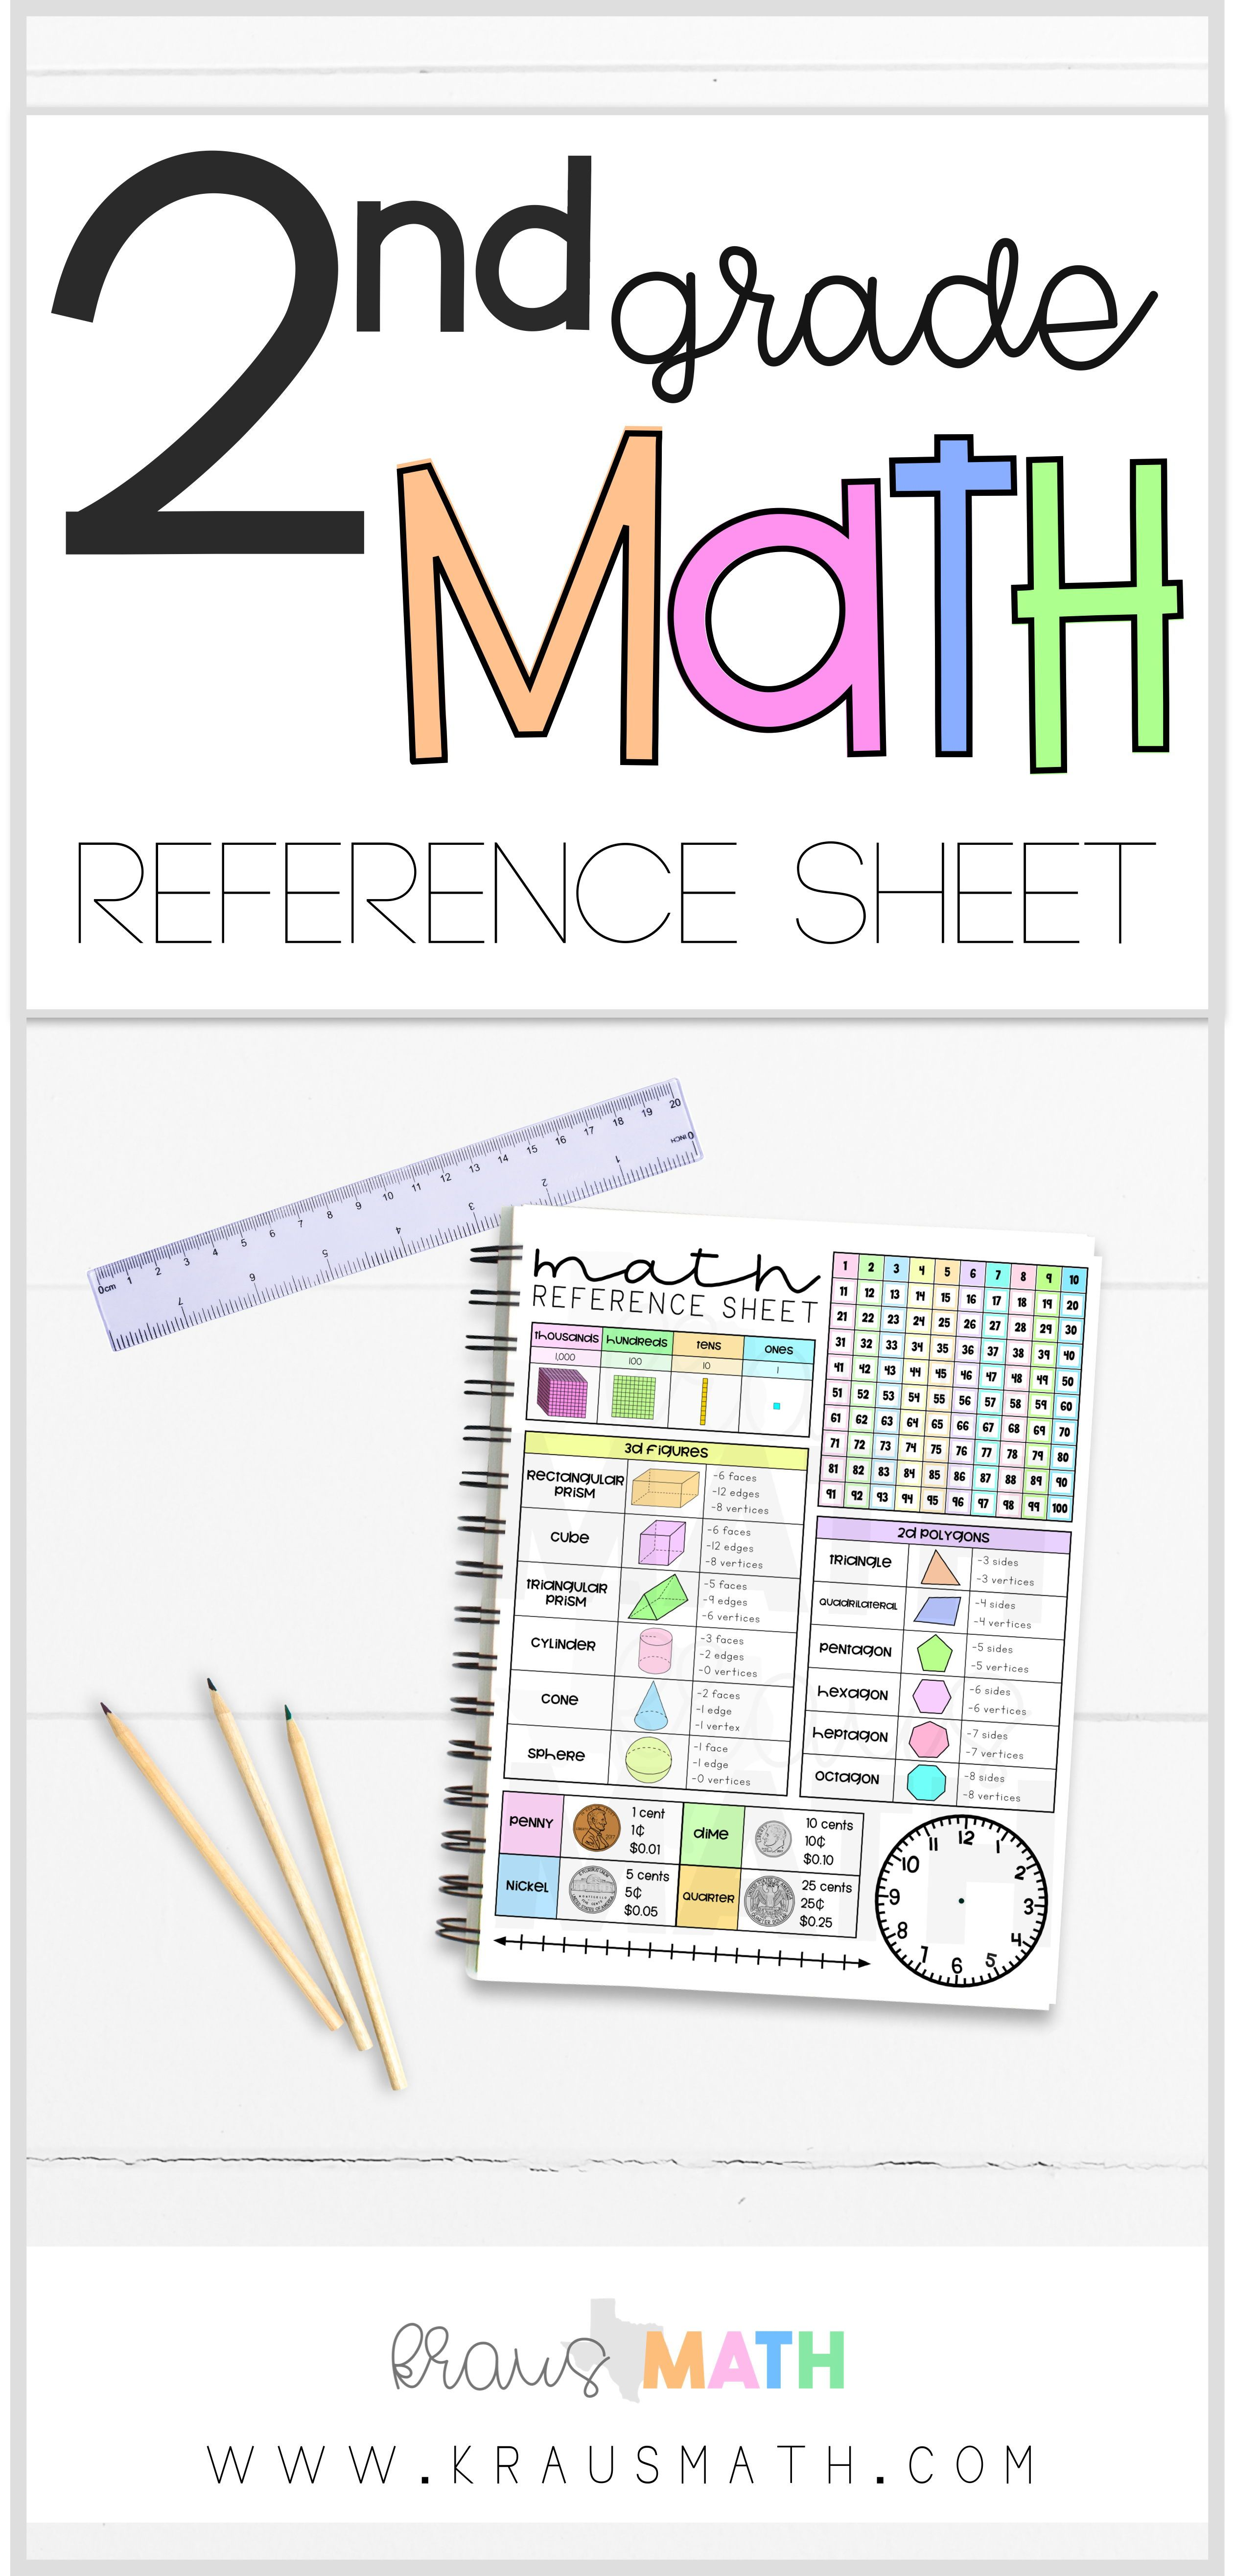 2nd Grade Math Reference Sheet